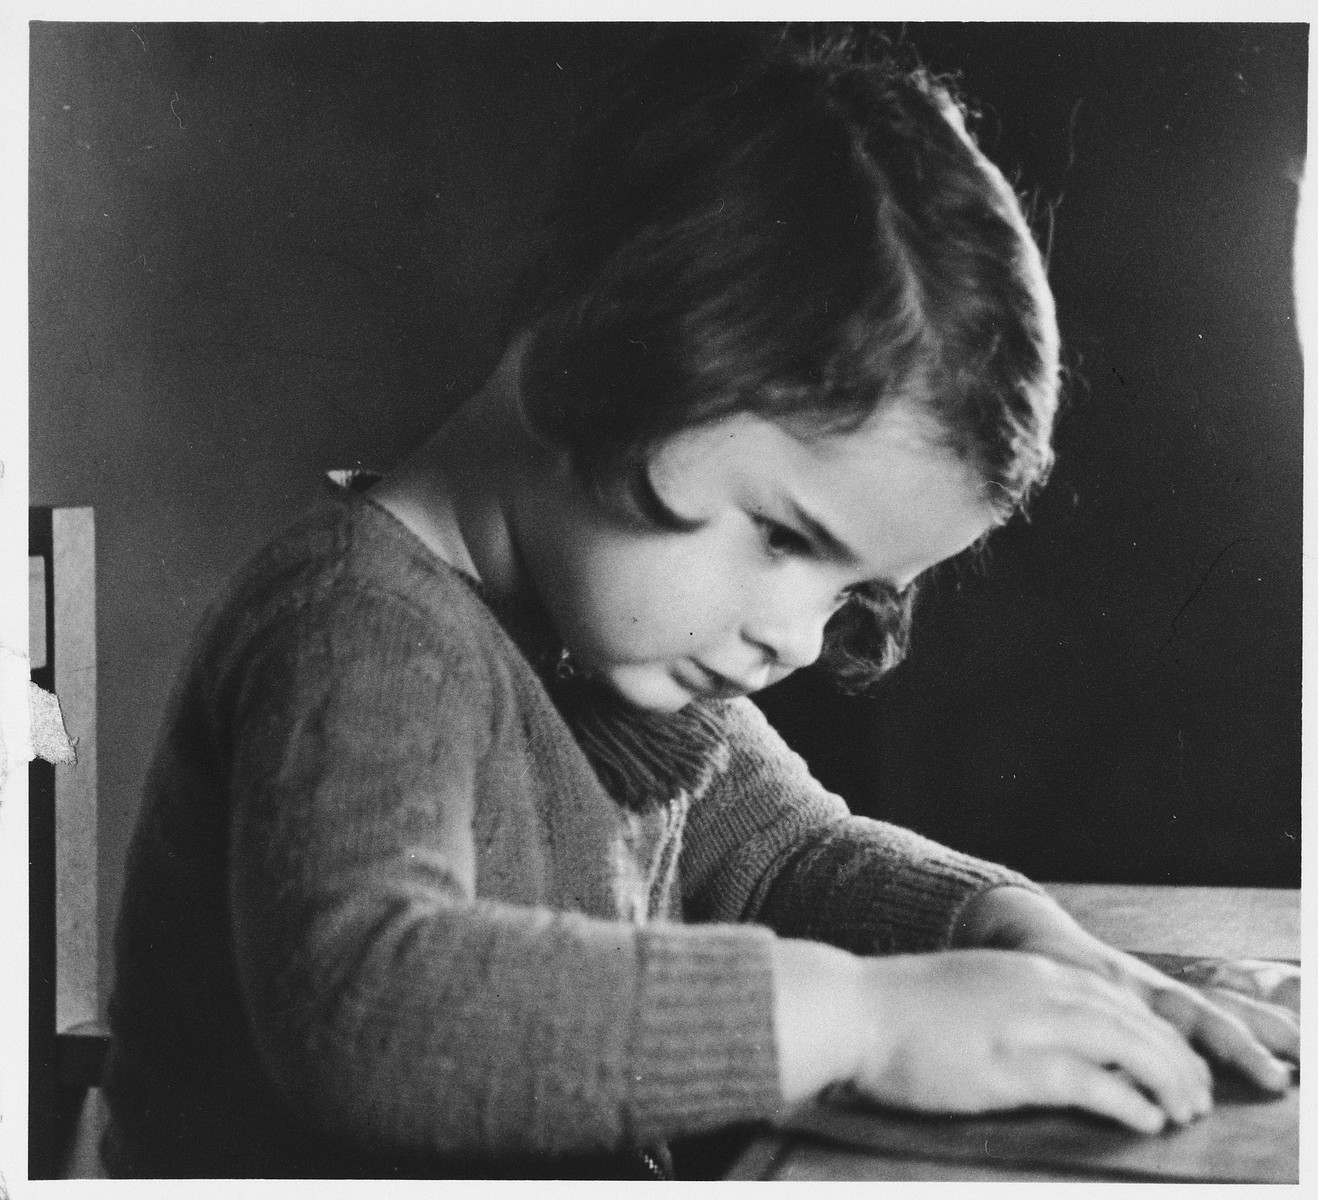 Sylvia Glaser, a German girl with Jewish ancestry, sits by a wooden table.